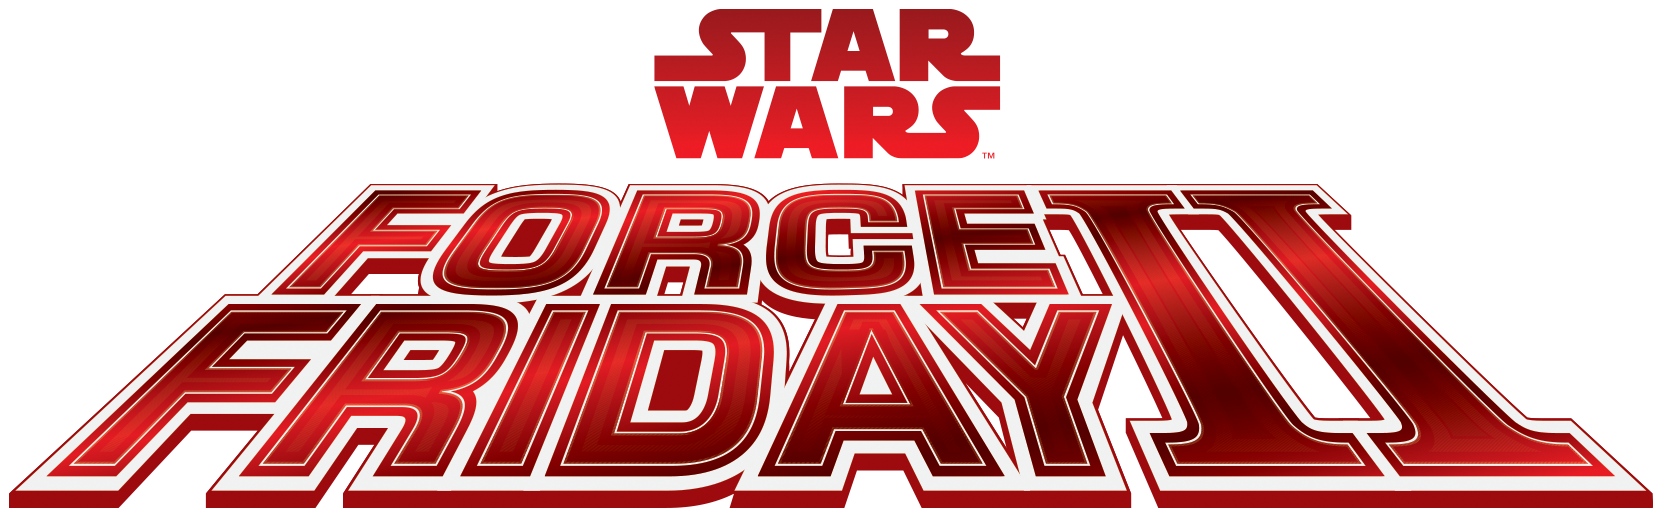 Star wars the last jedi clipart jpg black and white library The Countdown Begins for Star Wars: The Last Jedi Merch! - Welcome ... jpg black and white library